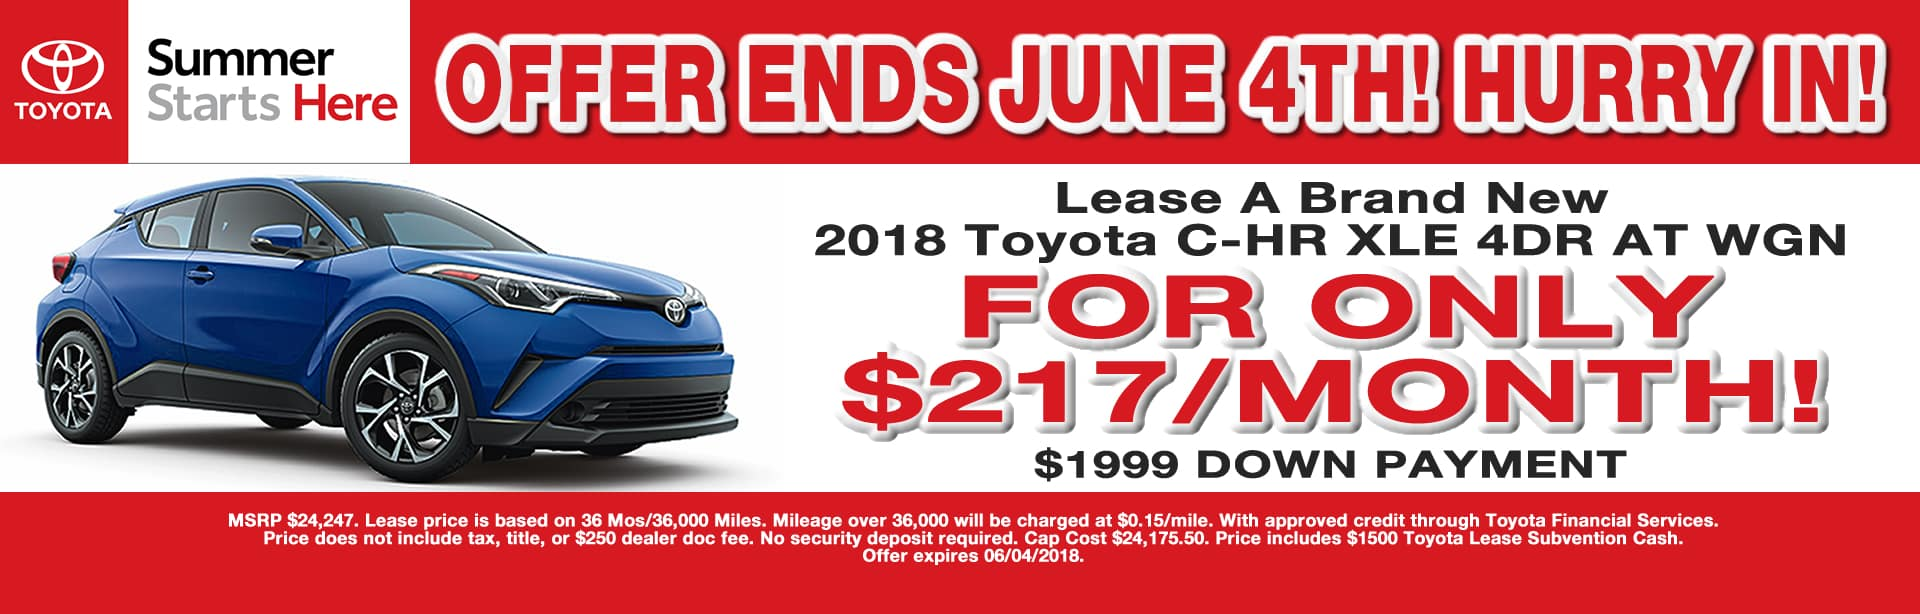 C-HR LEASE SPECIAL CAIN TOYOTA NORTH CANTON OHIO MAY 2018